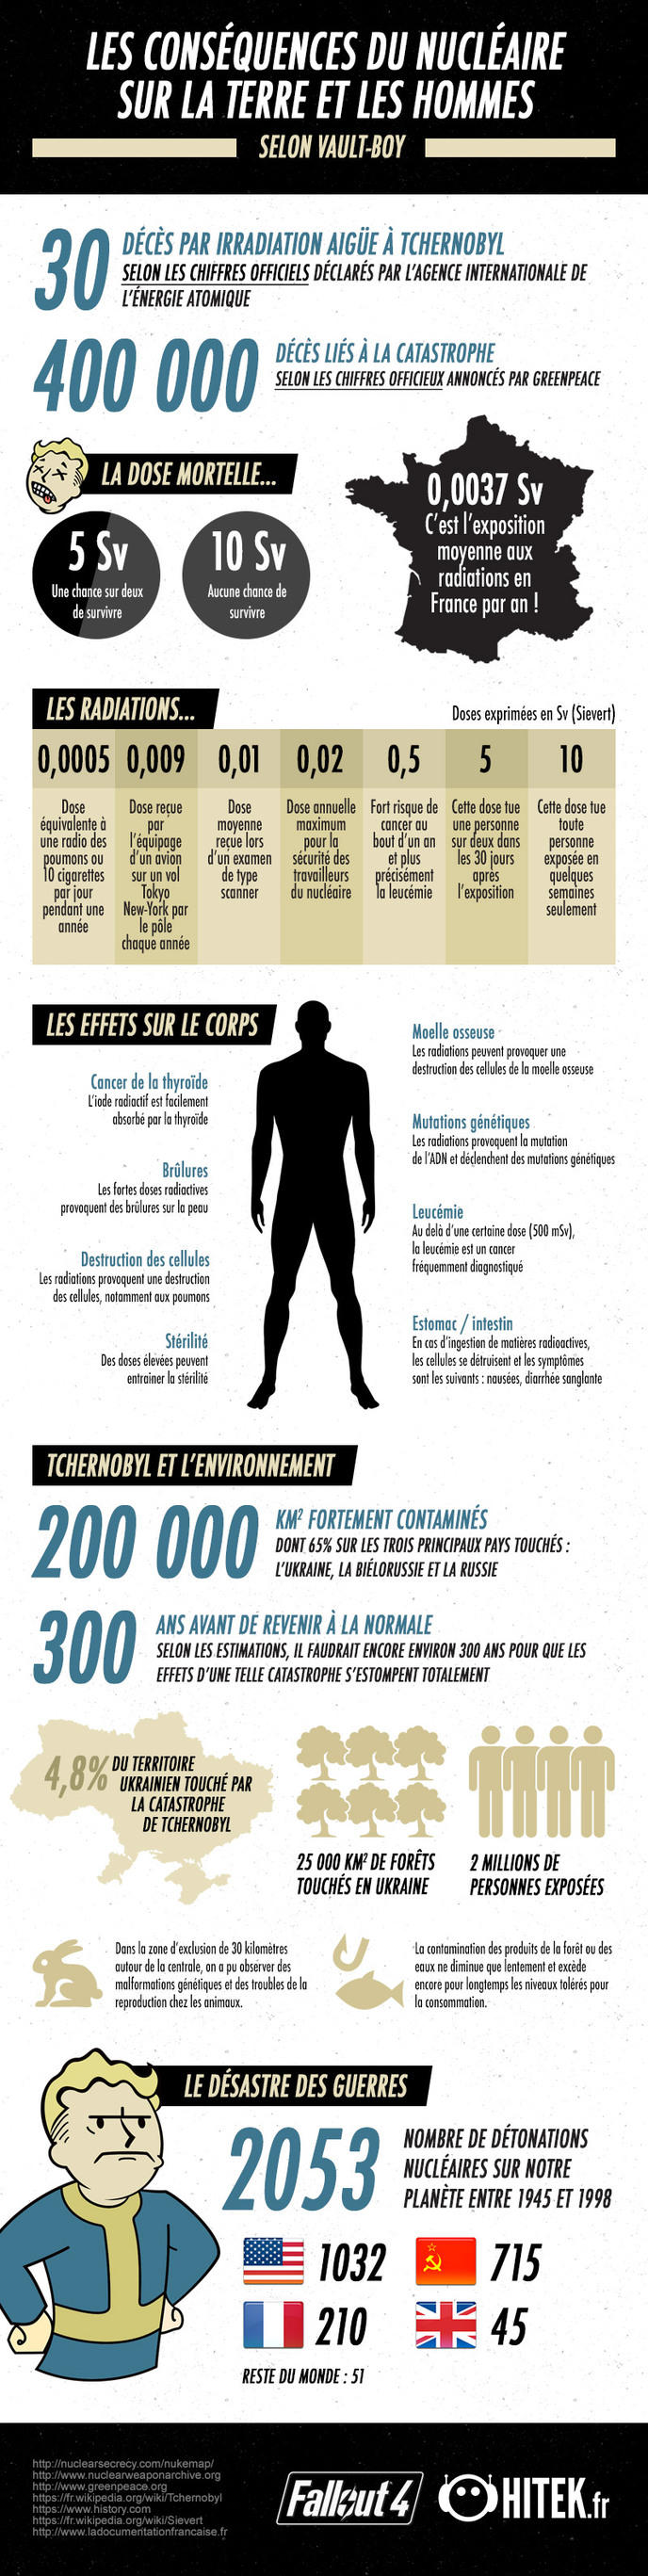 infographie fallout